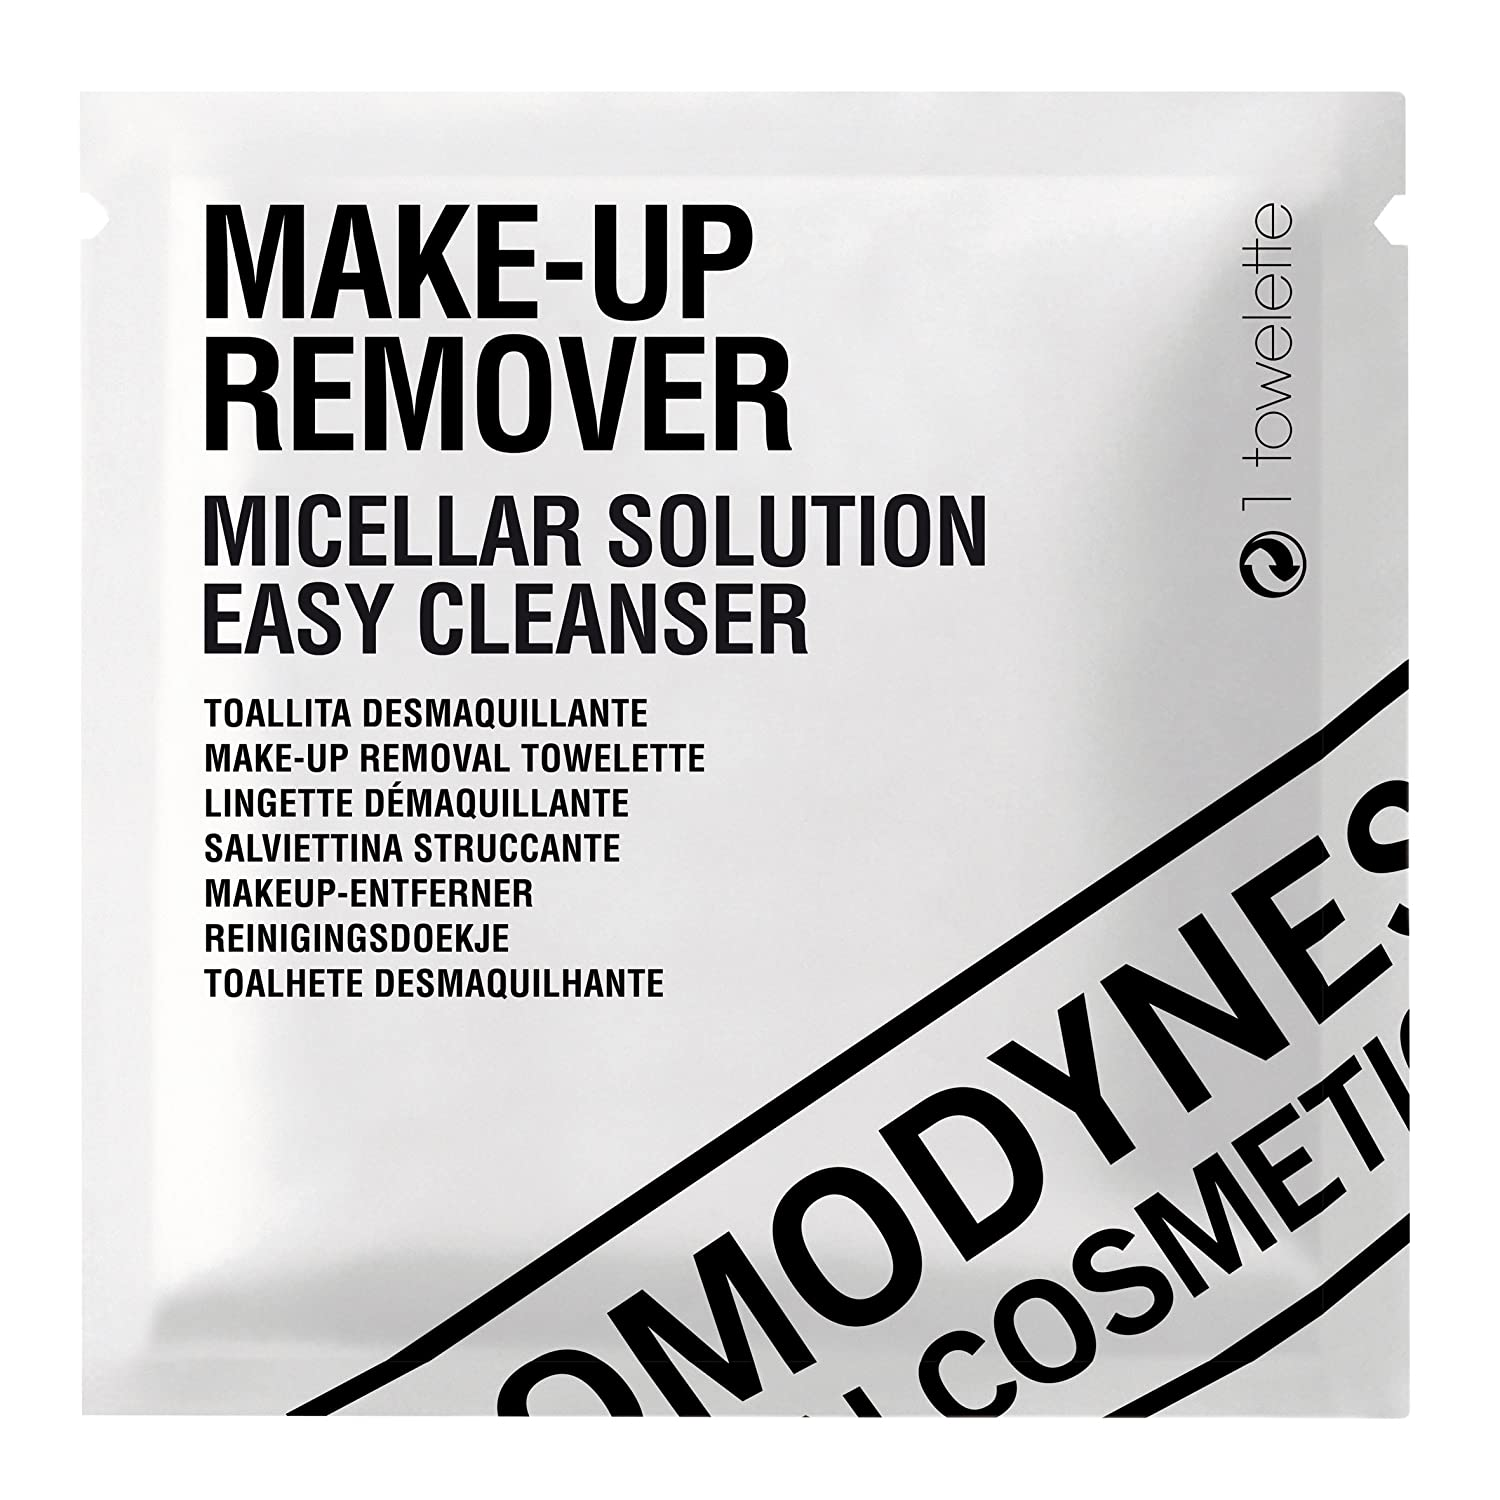 Comodynes Micellar Cleanser Make-up Remover 20 Wipes Hugo Boss 8428749396208